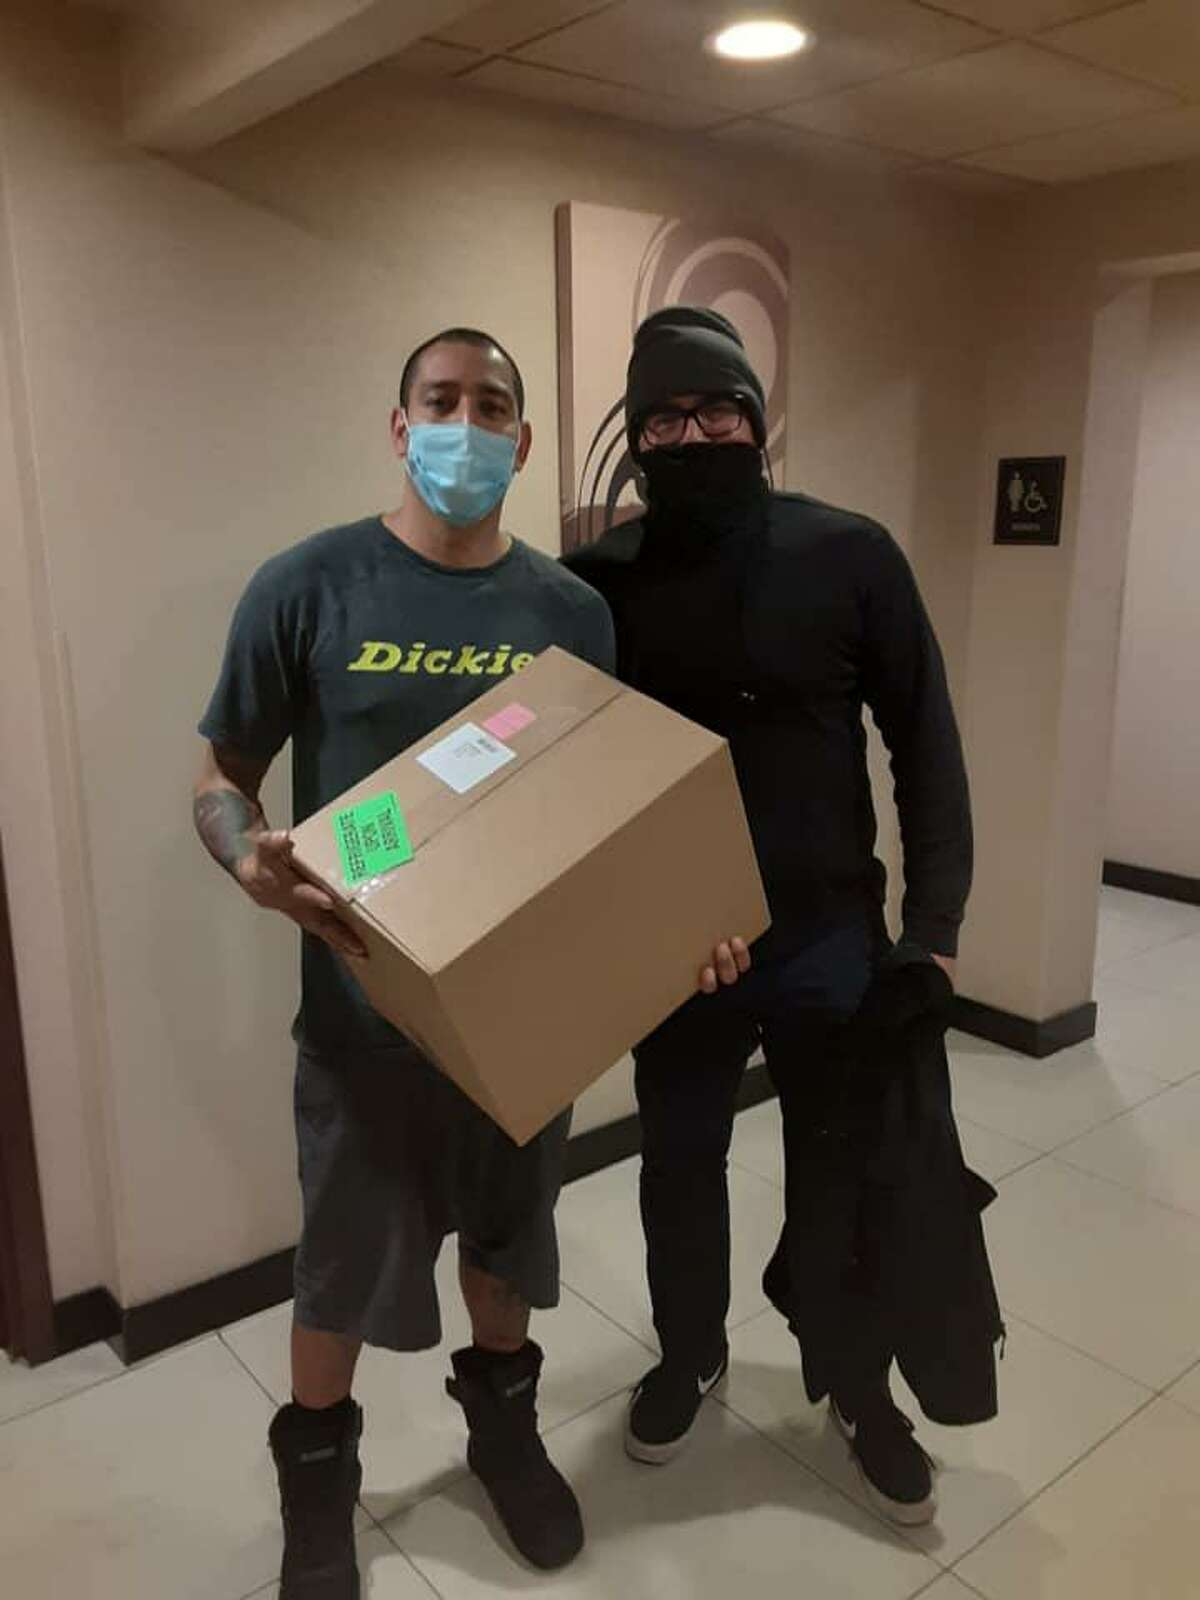 Atlas Delivery Service driver Pablo Pedraza, 40, left, stands with Reynaldo Villegas, after driving from Houston to San Antonio, through bad weather and on icy roads, to deliver life-saving medicine for Villegas' baby daughter, Evangelina.